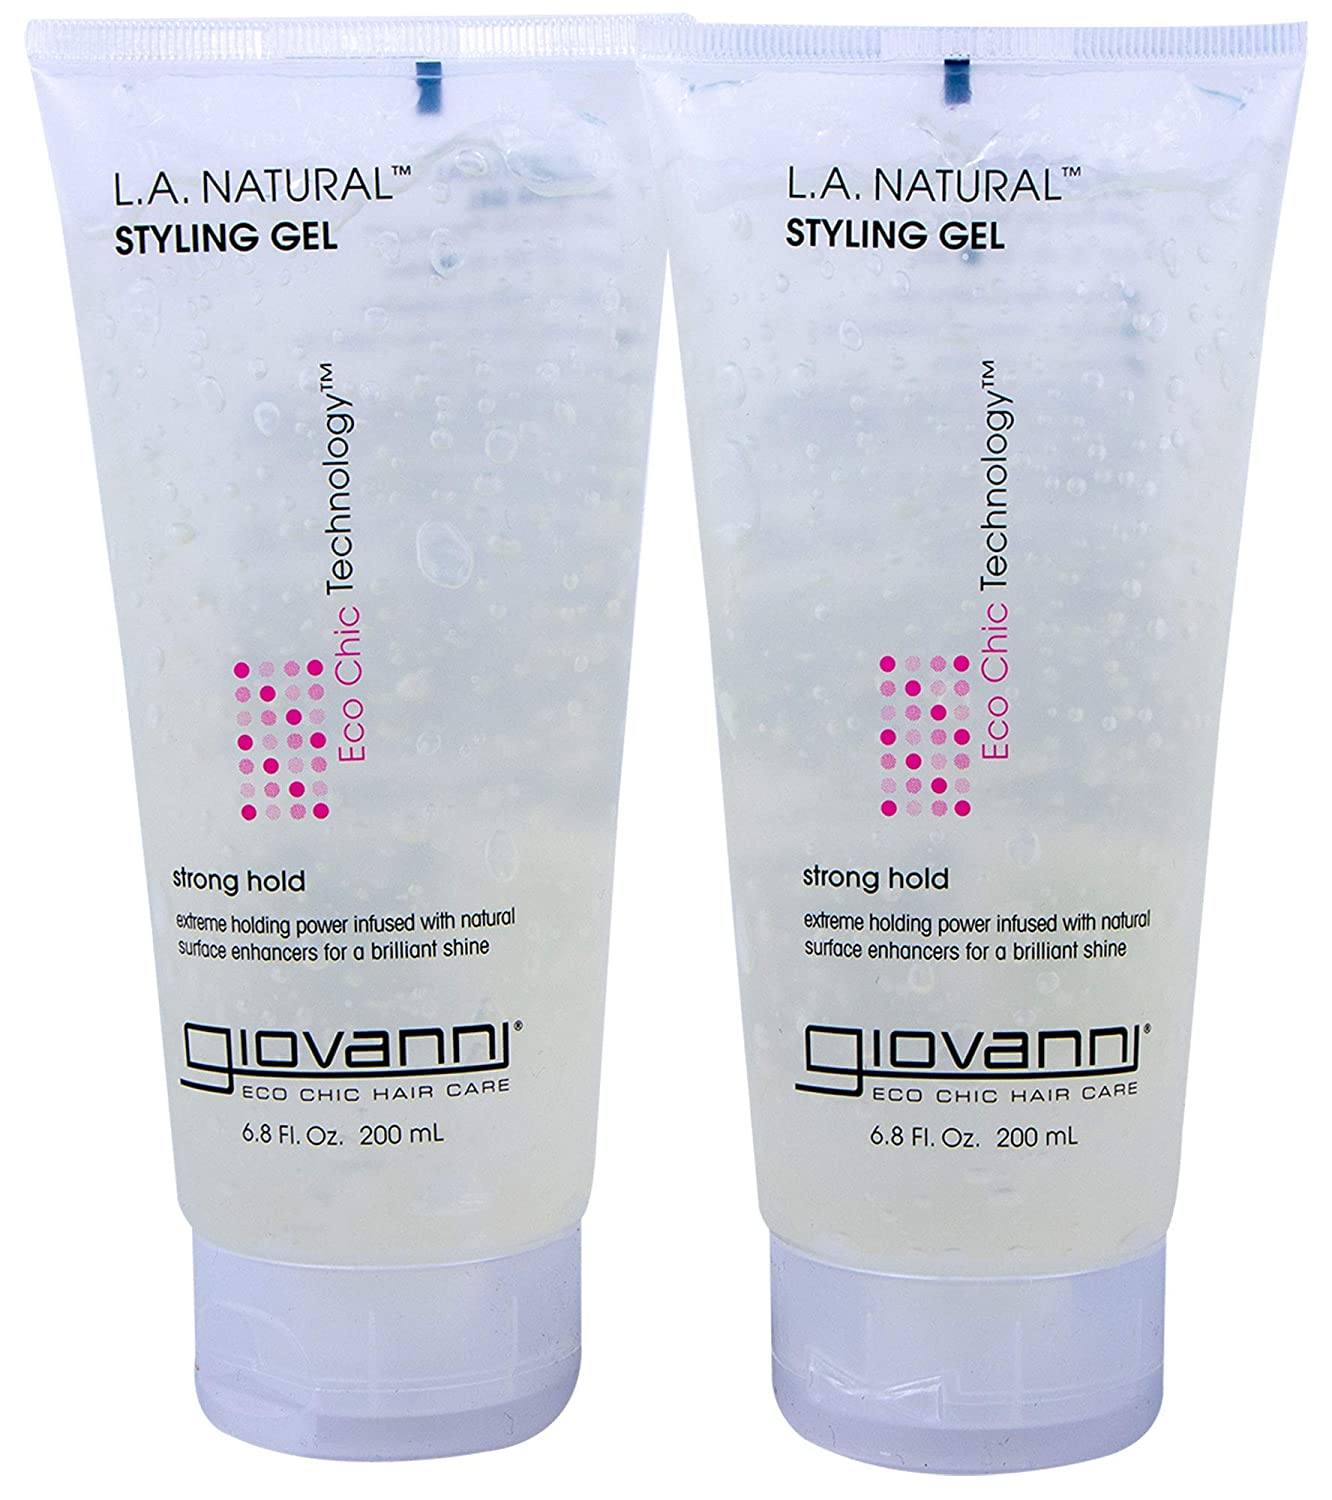 Eco Chic L.A. Natural Styling Gel (6.8 Oz, 2-Pack)